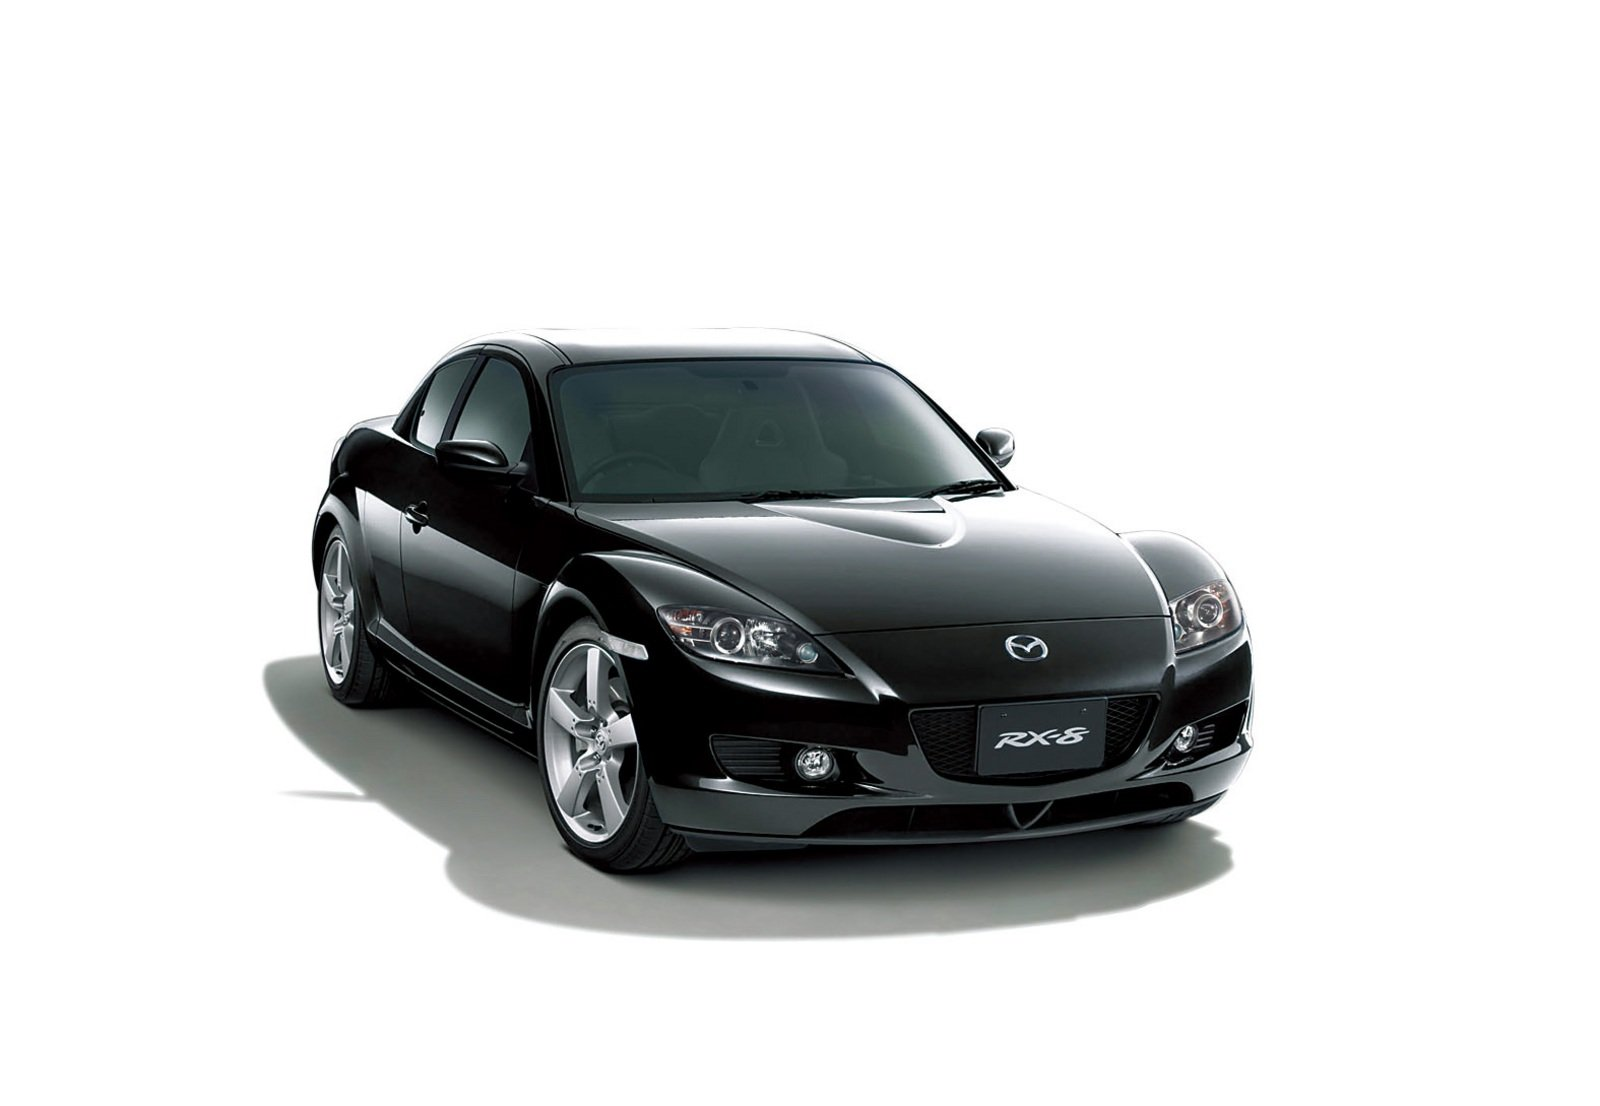 2007 mazda rx 8 review top speed. Black Bedroom Furniture Sets. Home Design Ideas